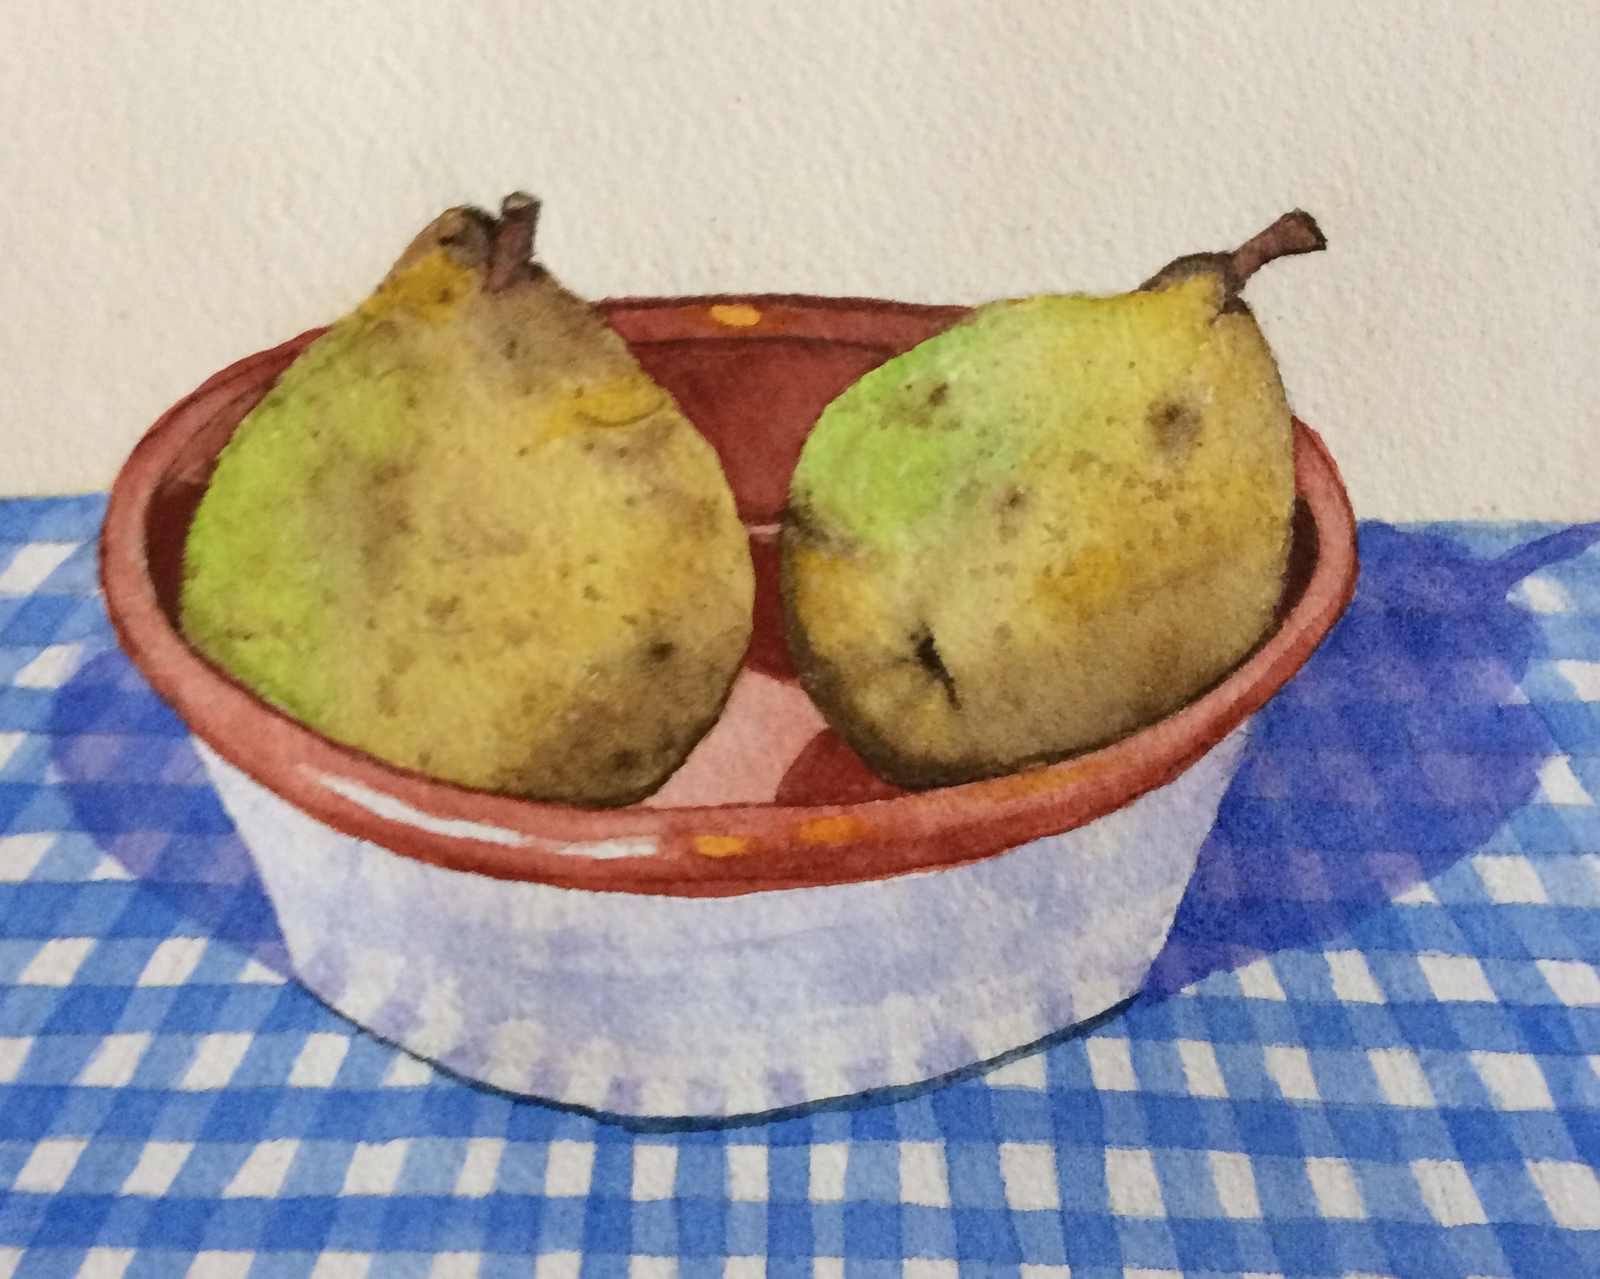 Pears ripening - sold